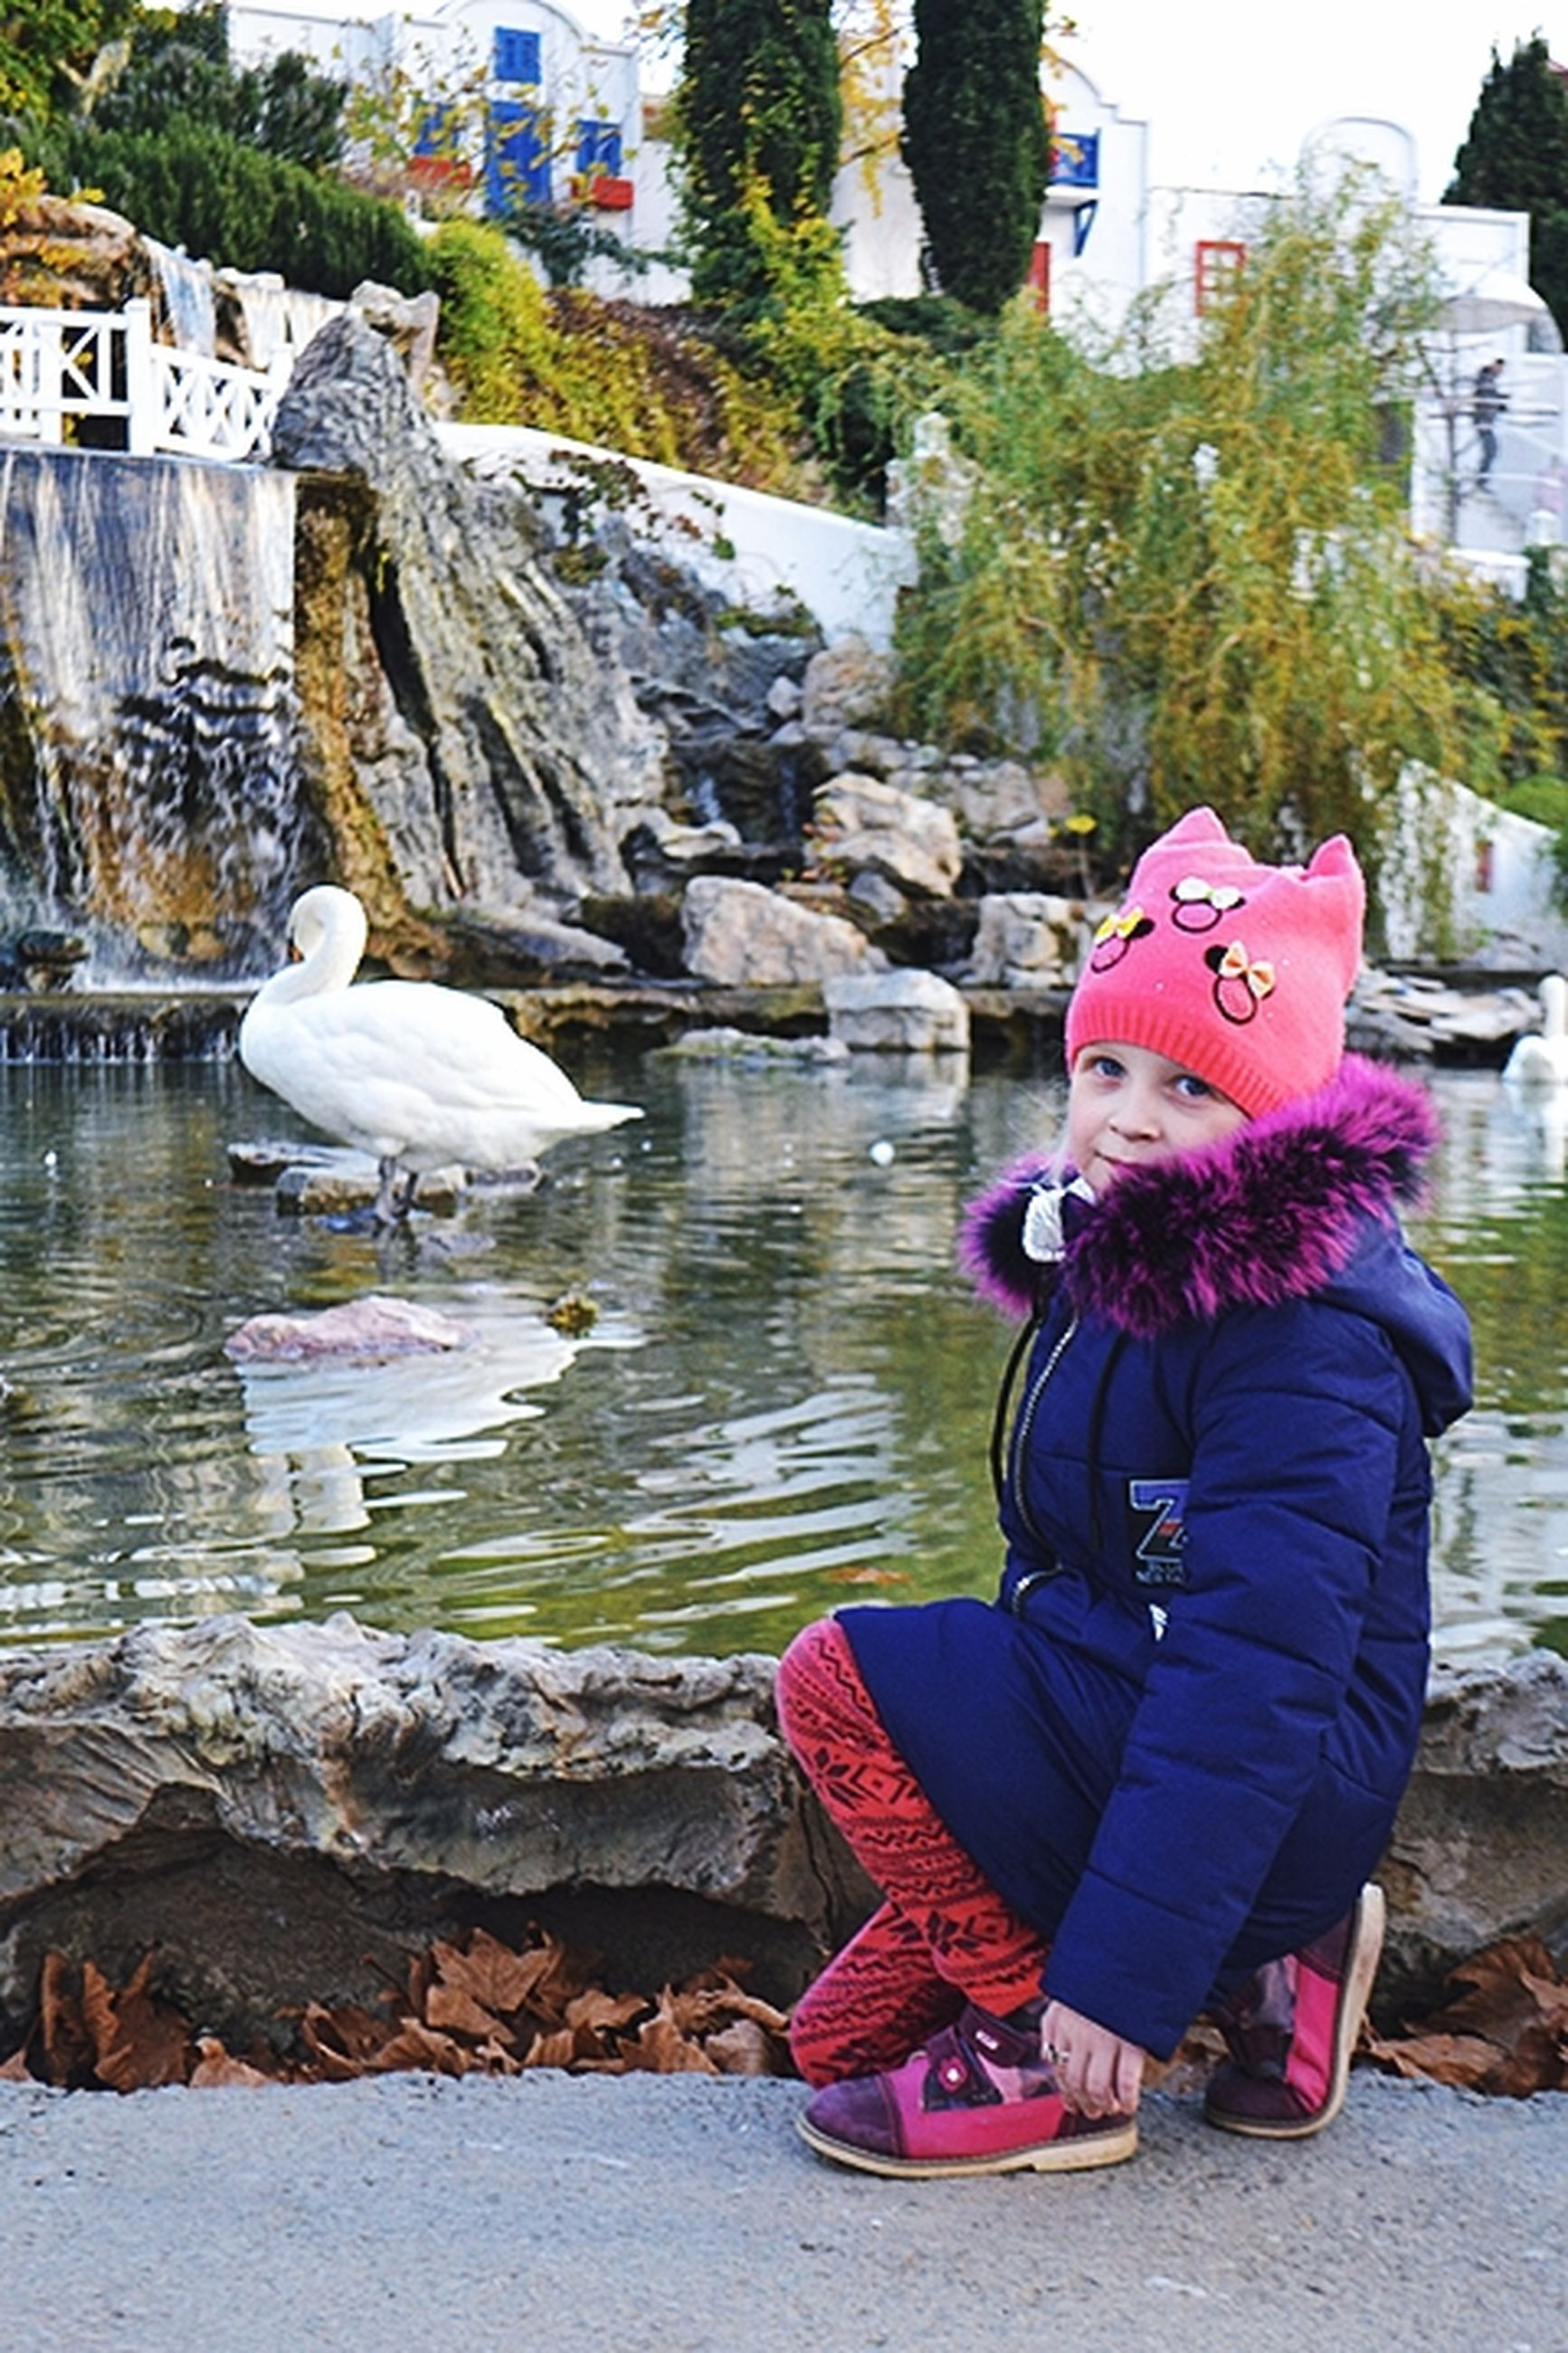 full length, water, real people, one person, child, lifestyles, bird, vertebrate, leisure activity, day, childhood, animal, winter, nature, side view, looking, animal wildlife, warm clothing, outdoors, innocence